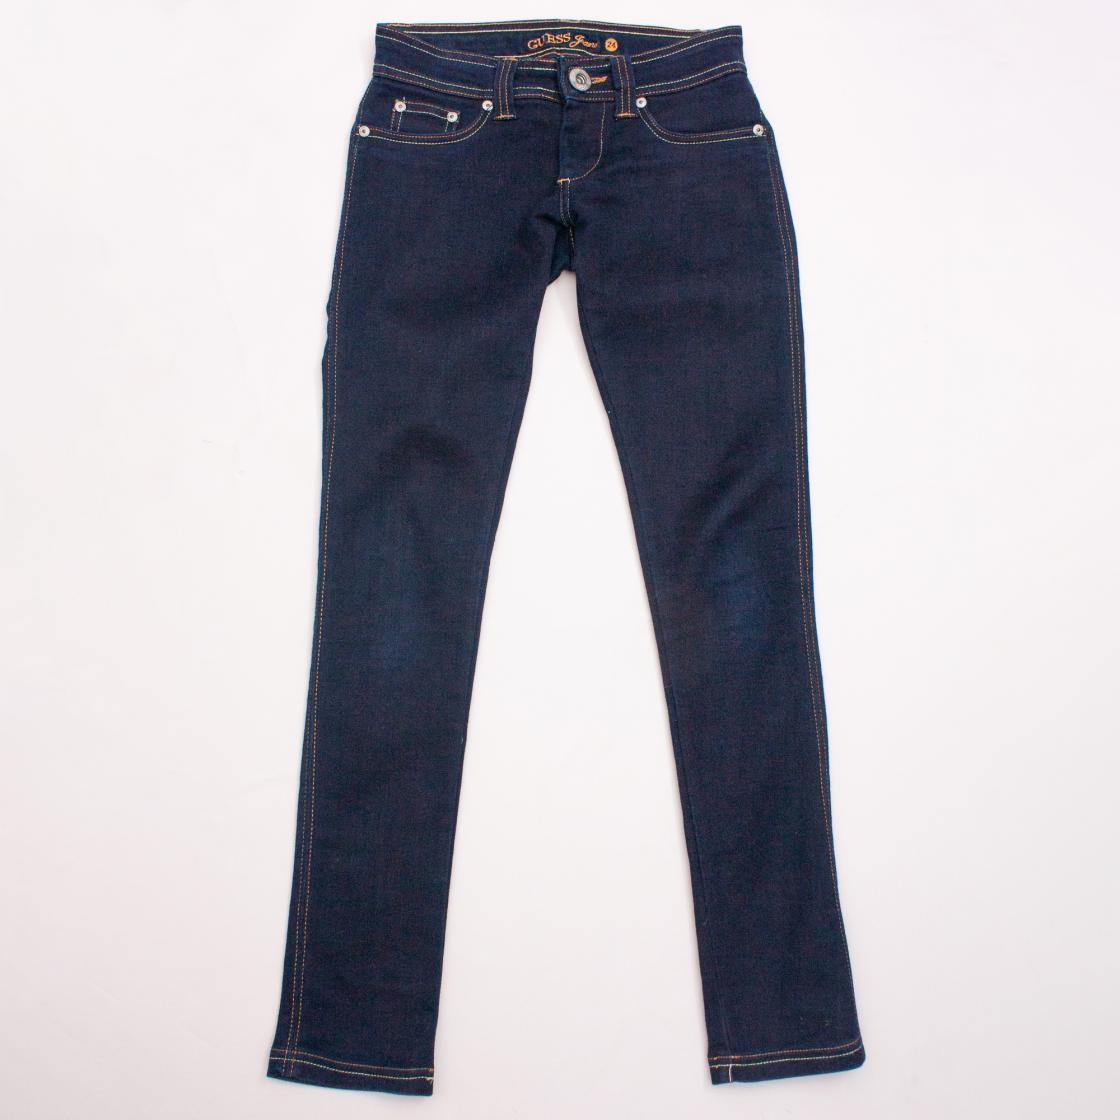 Guess Navy Blue Skinny Jeans